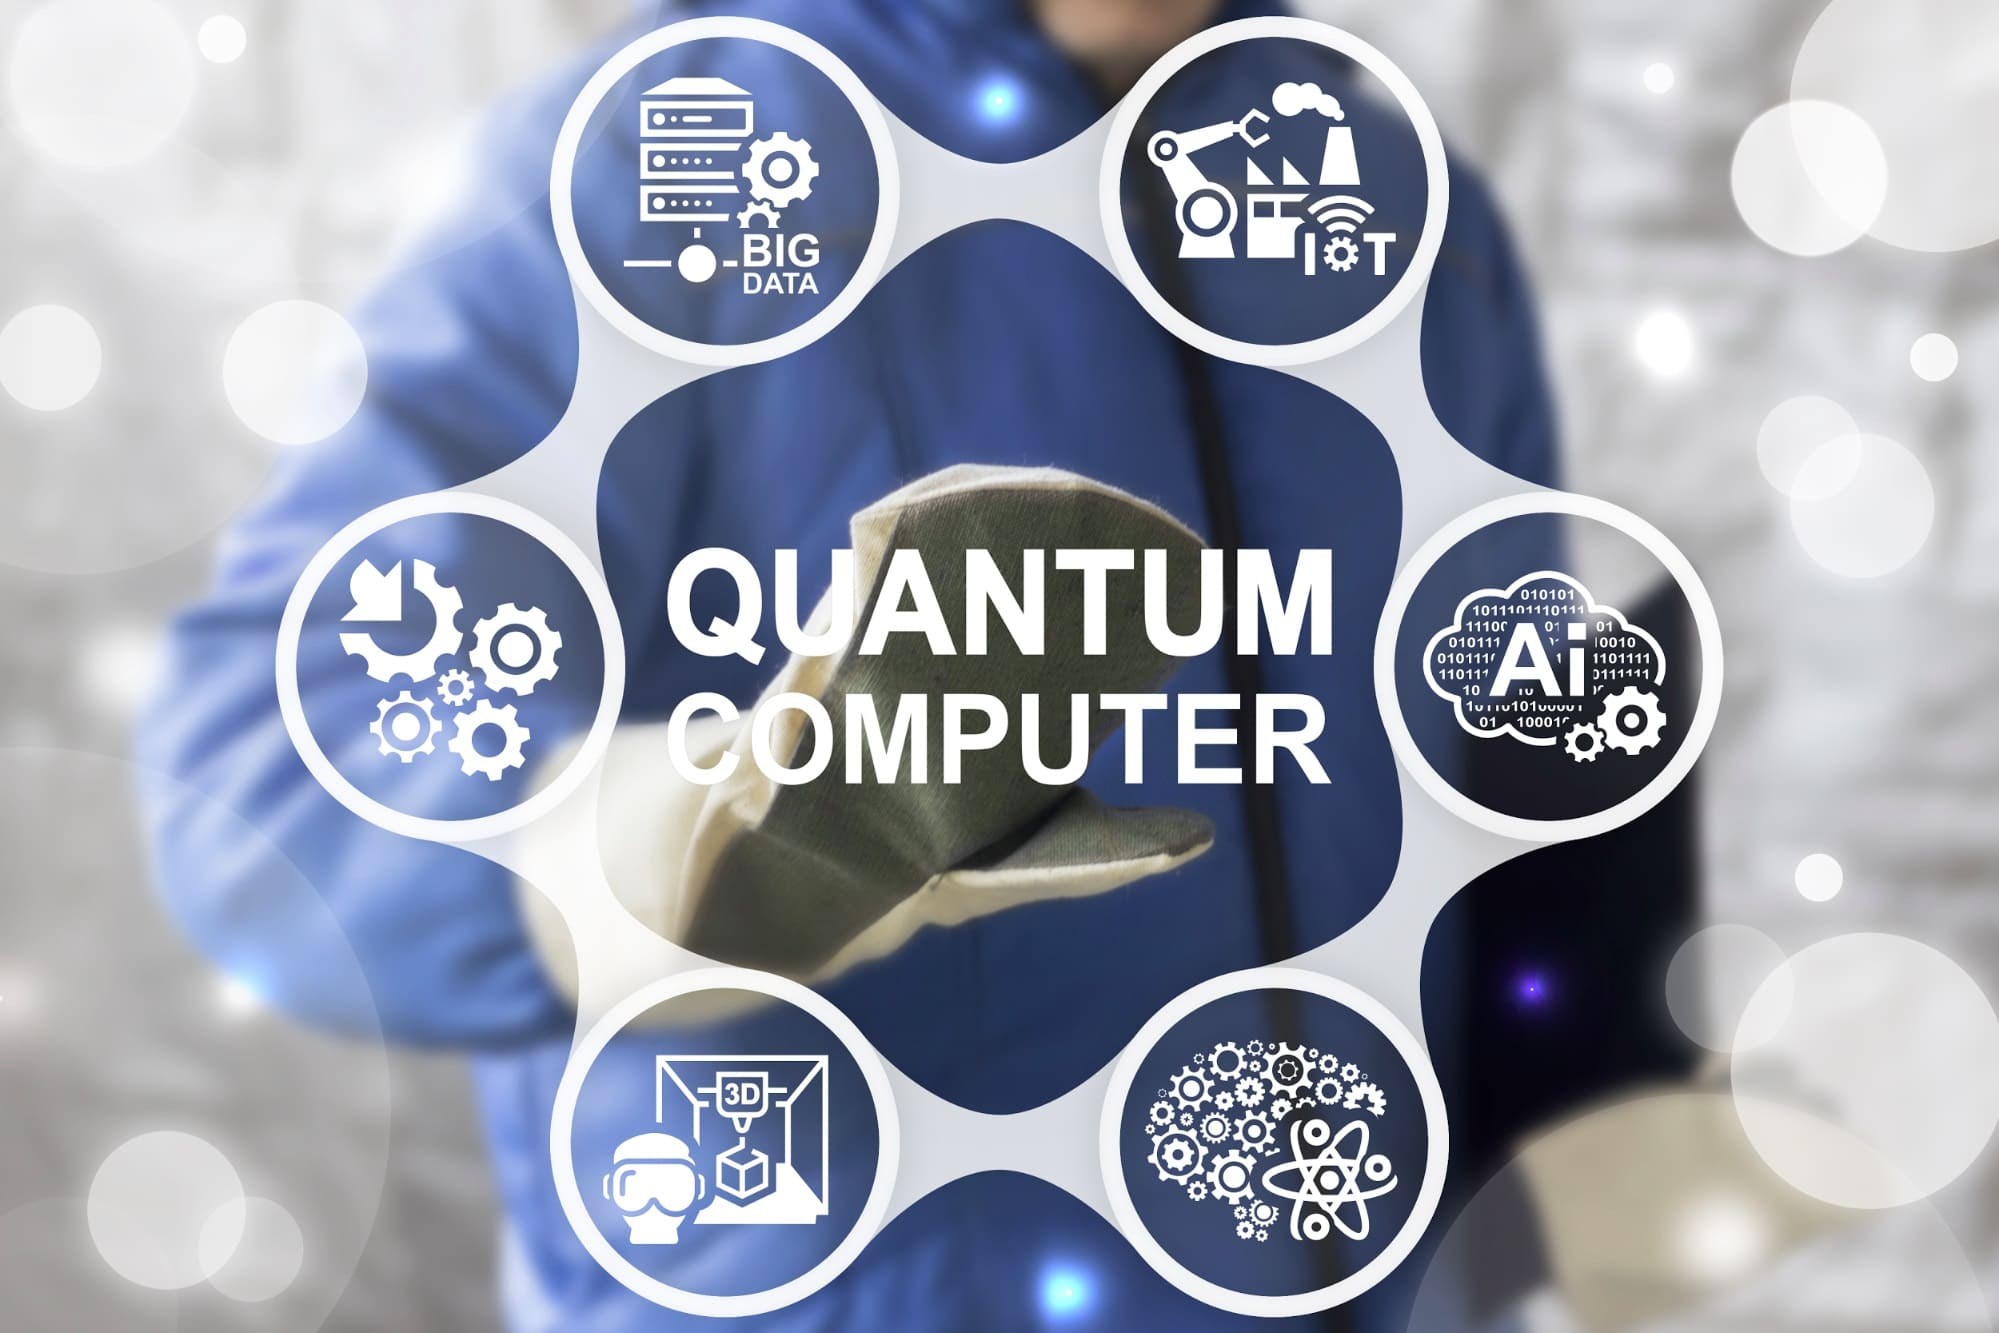 What Are Quantum Computers?